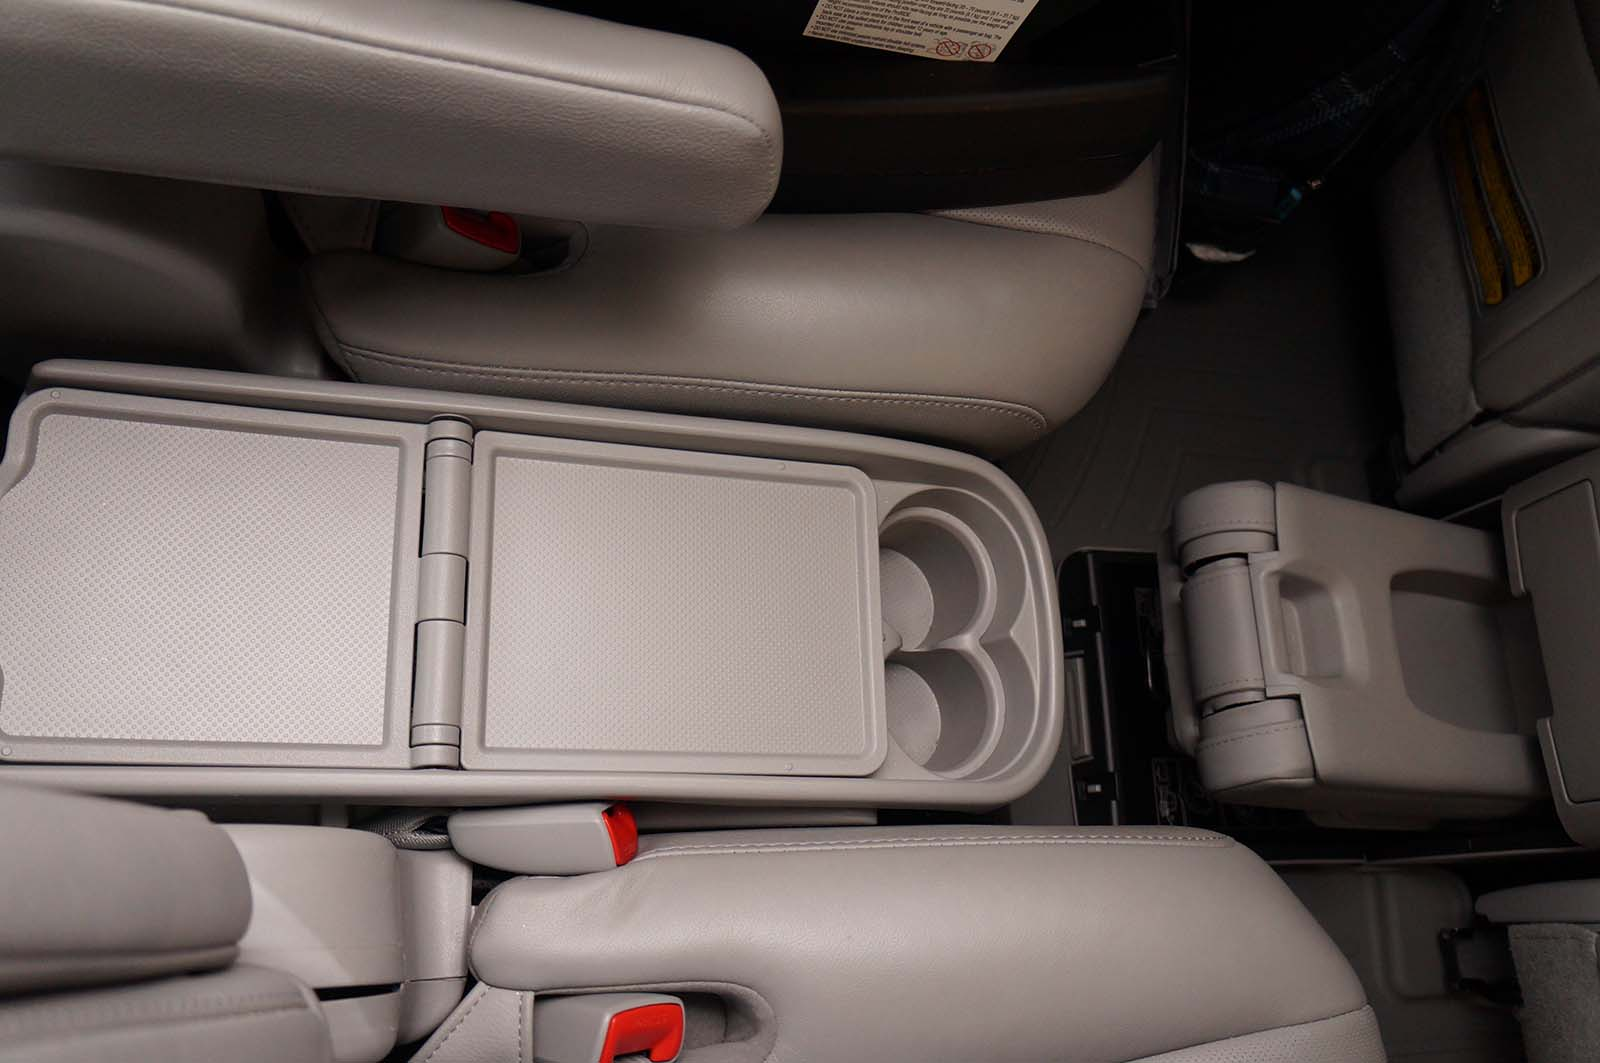 2012 Toyota Highlander middle seat 3 by Sarah Franzen